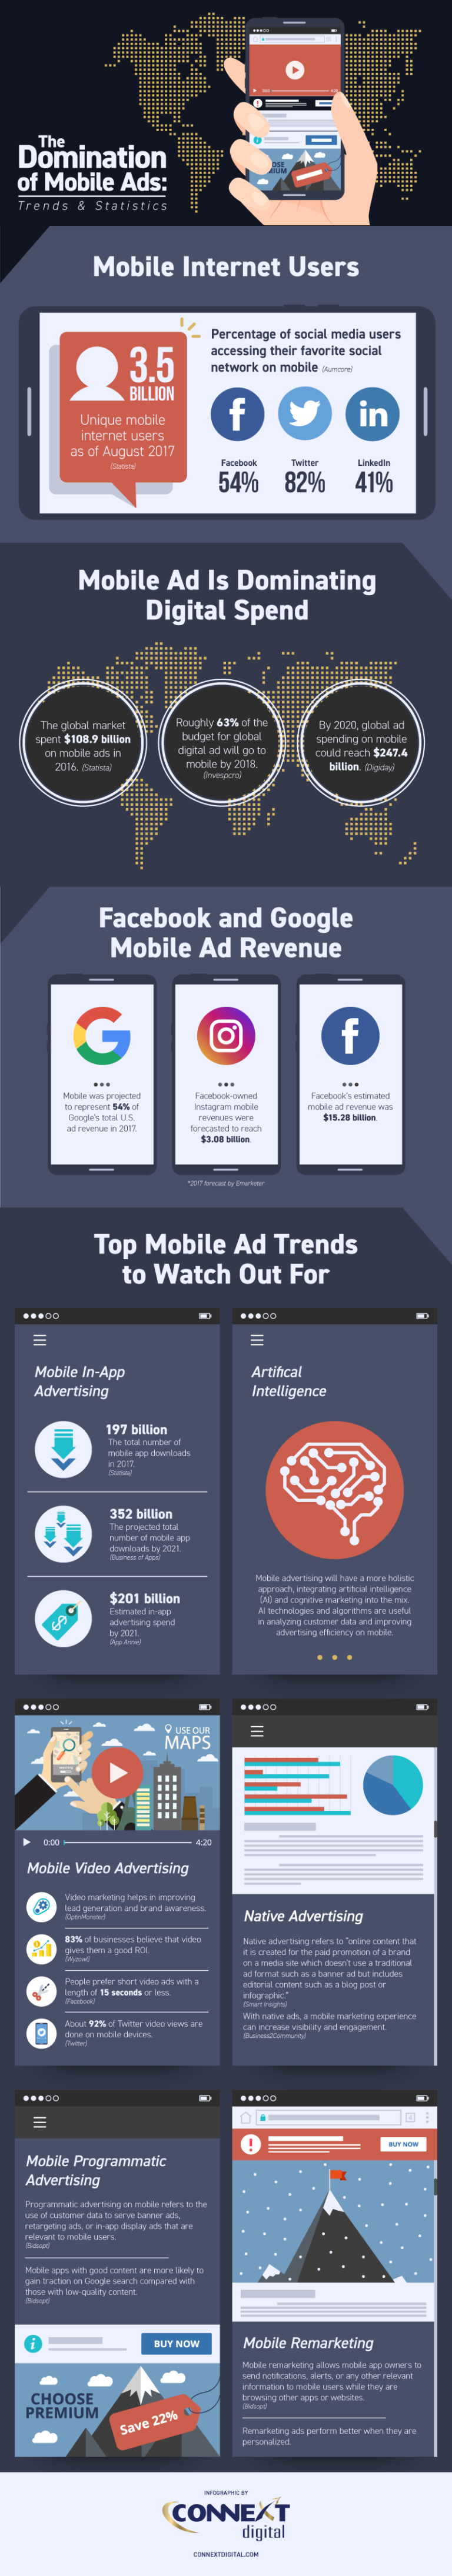 The domination of mobile ads statistics and trends for Mobili ad trend